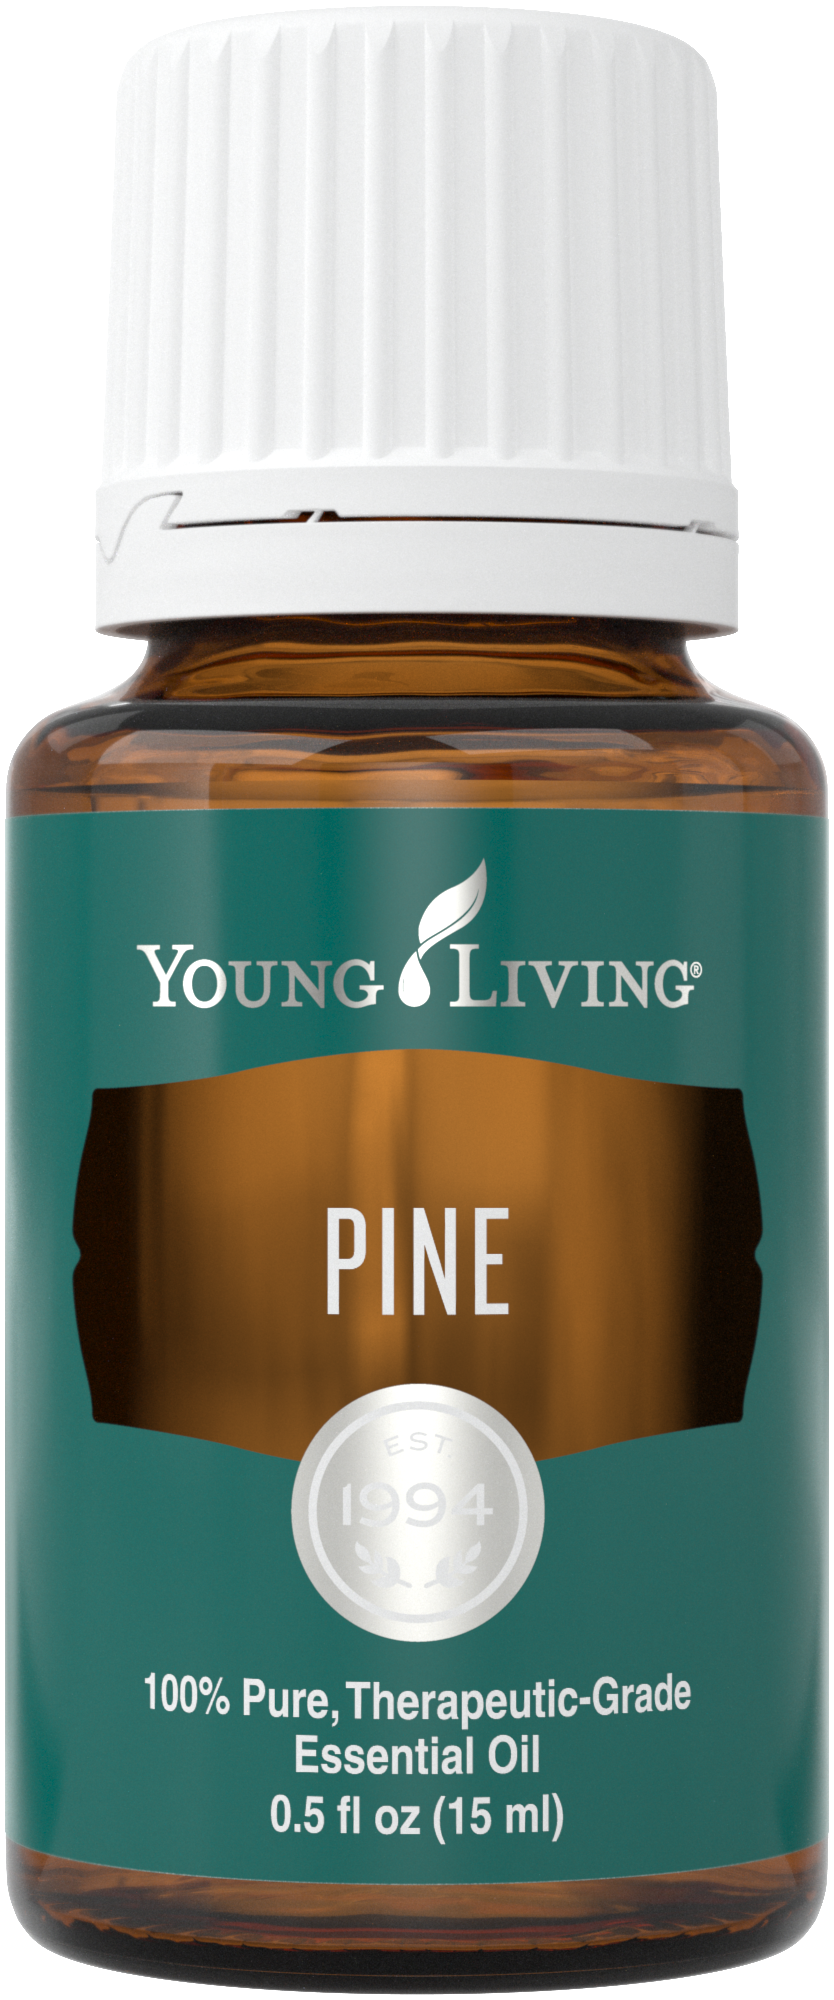 Bottle of Pine Essential Oil